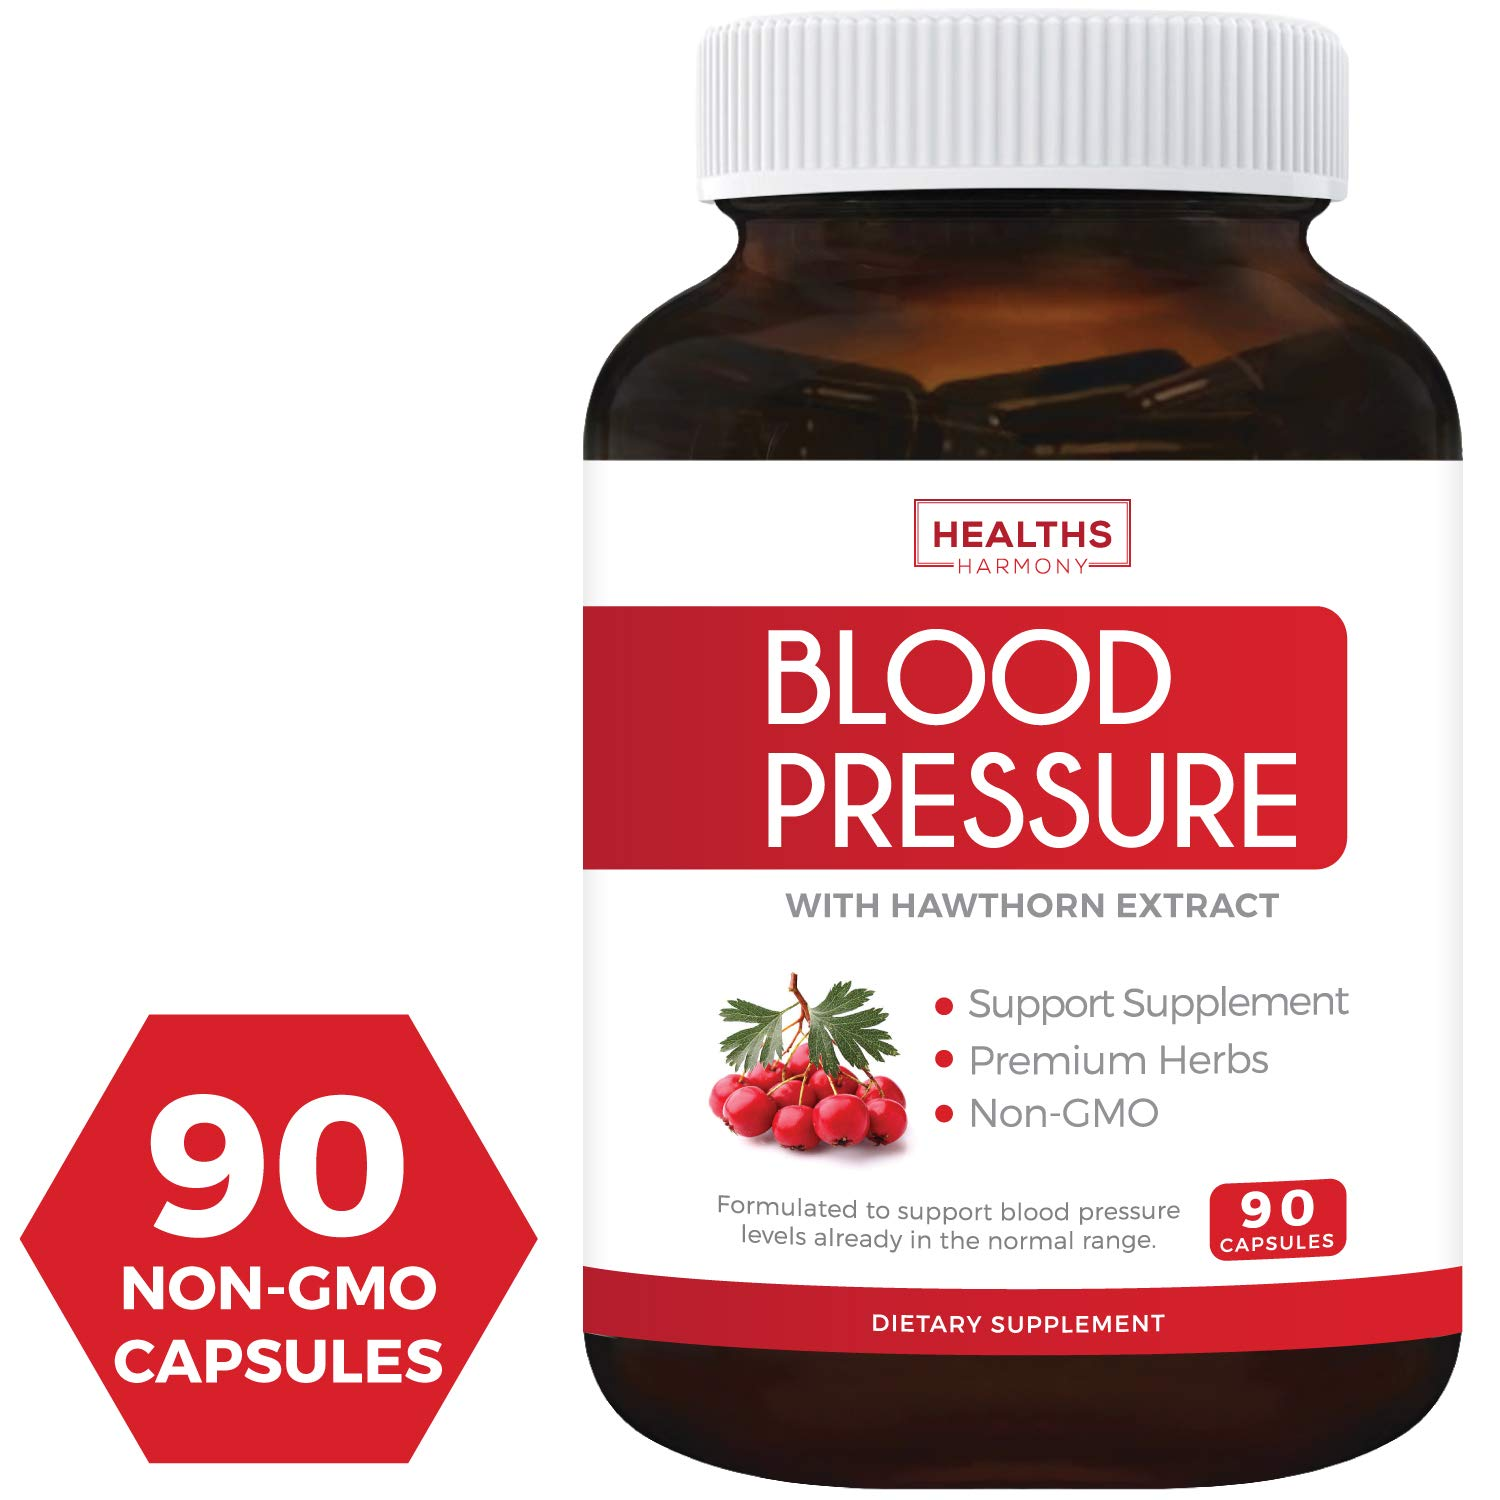 Best Blood Pressure Support Supplement (NON-GMO) - Premium Natural Herbs, Vitamins & Berries - High Dosage of Hawthorn Extract – Berry Lower Pills – 90 Capsules